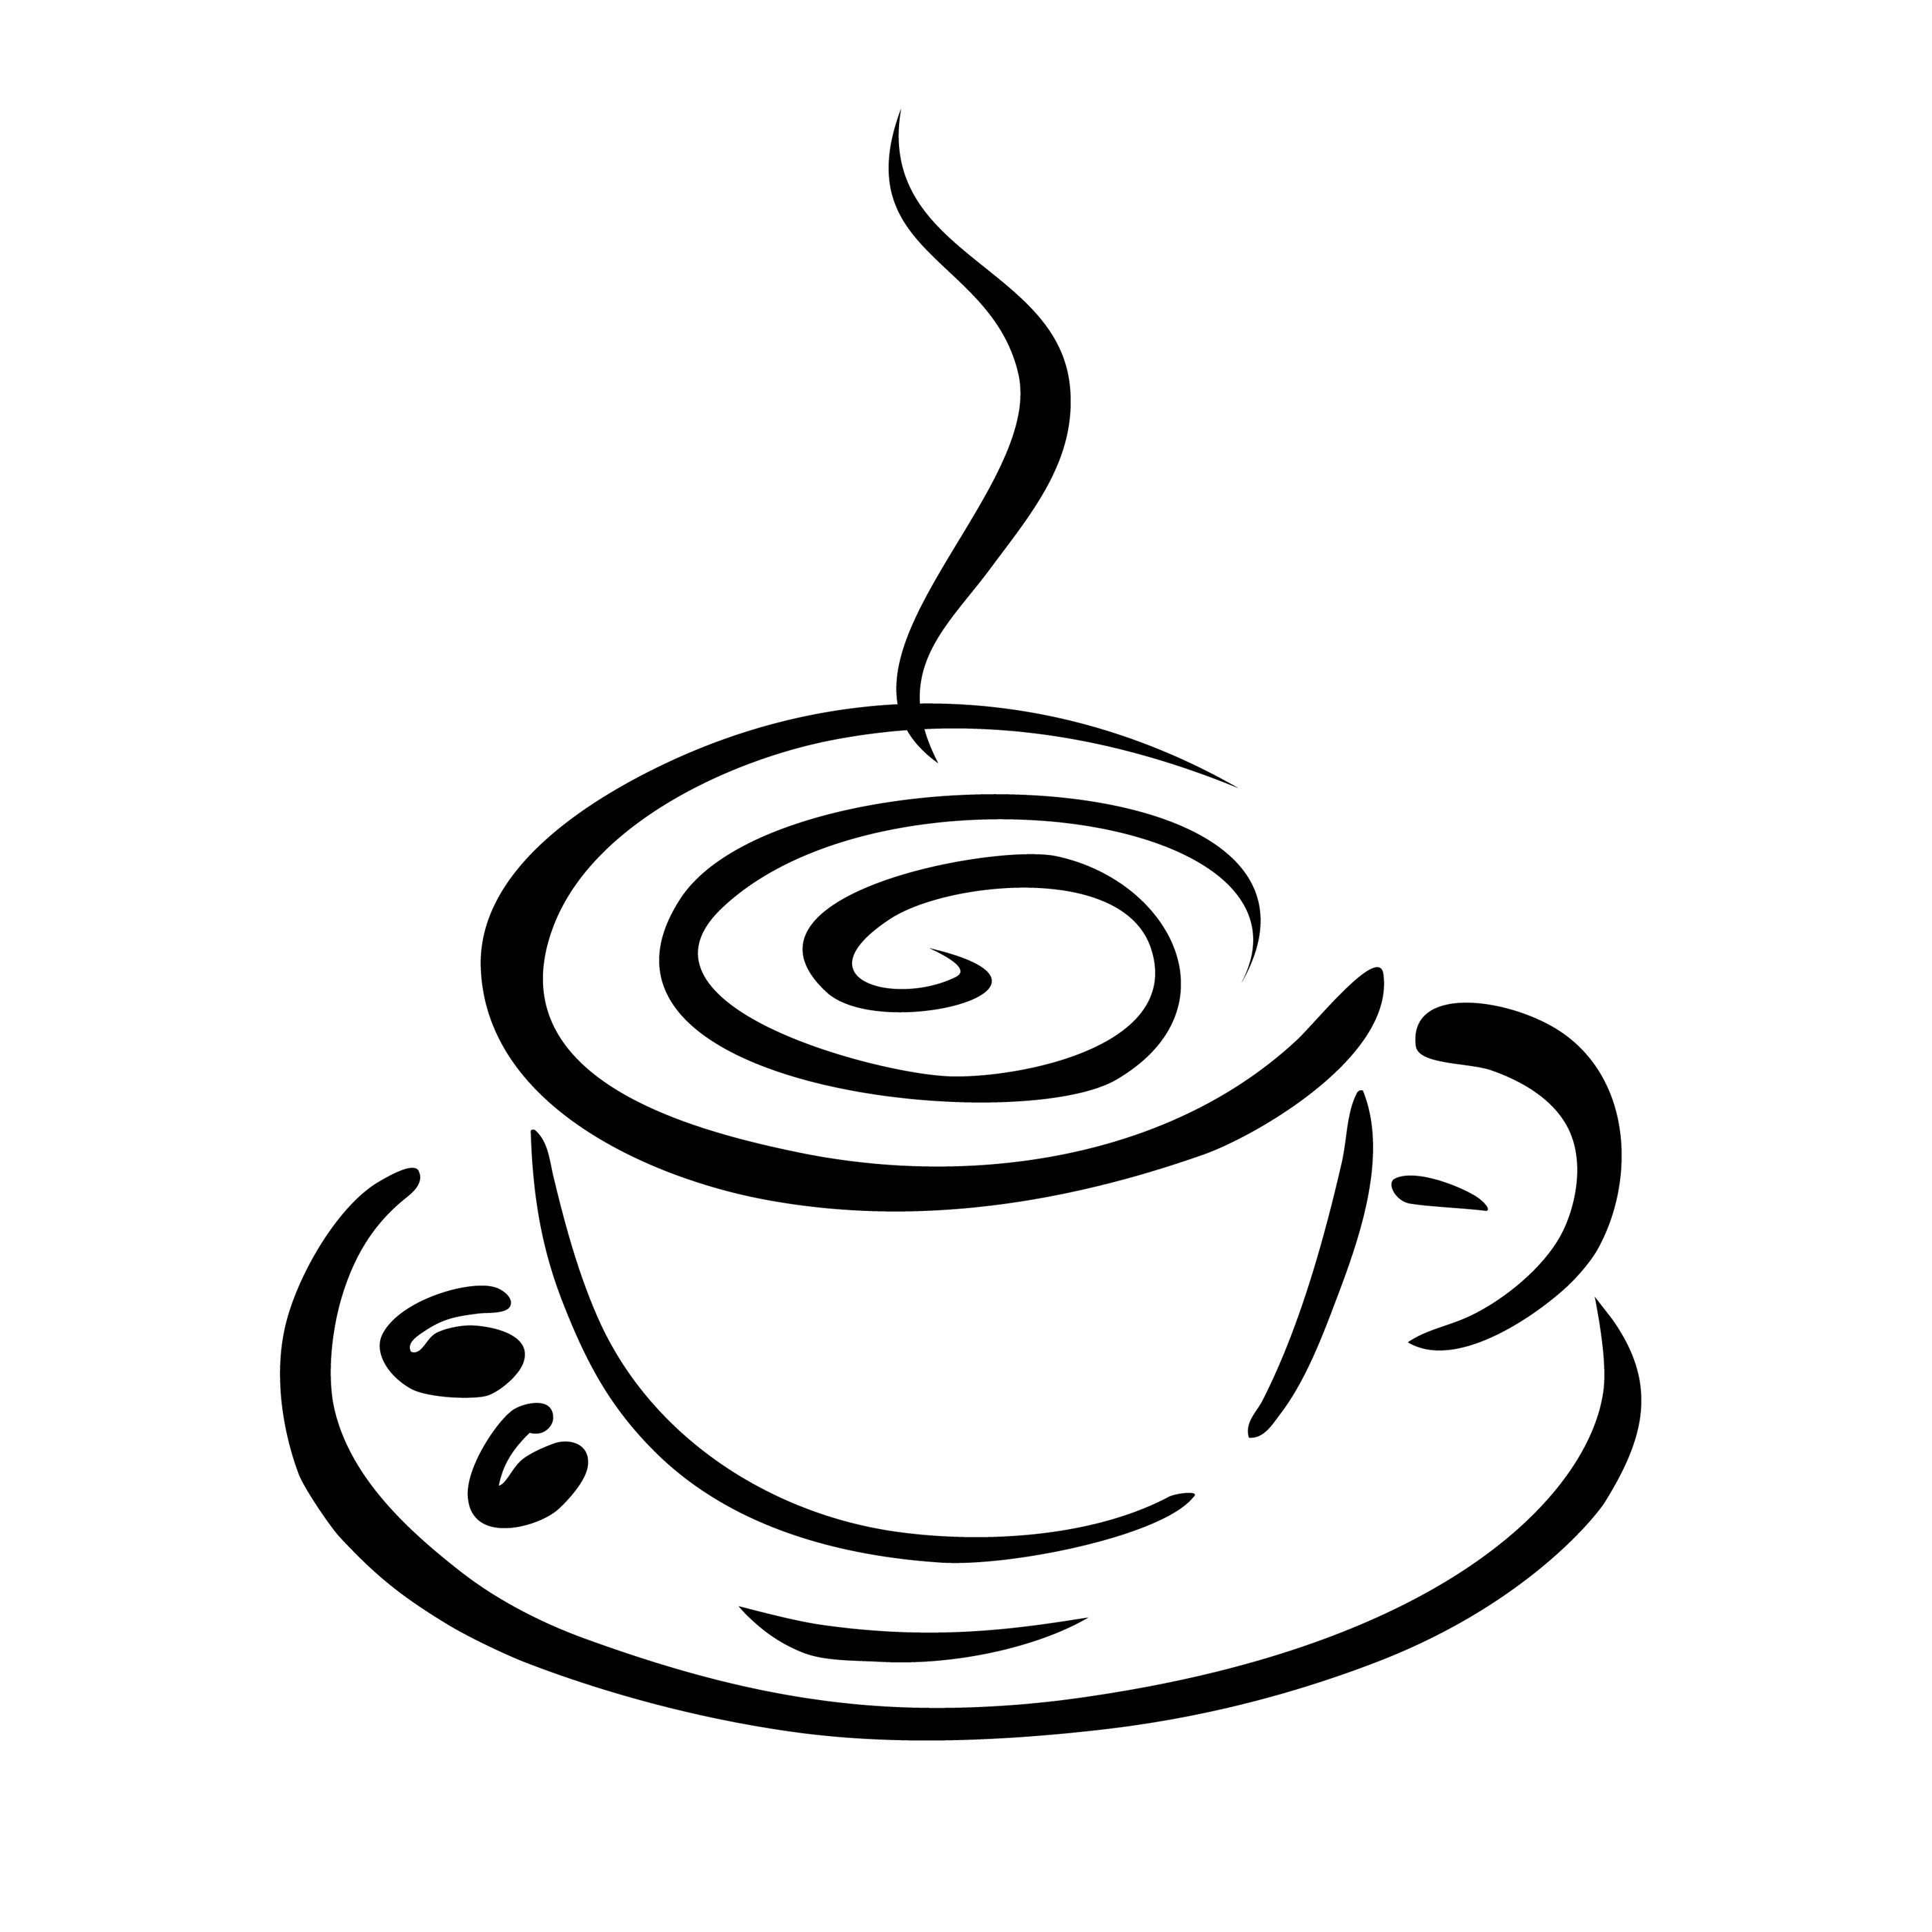 hight resolution of coffee cup black and white clipart clipart kid